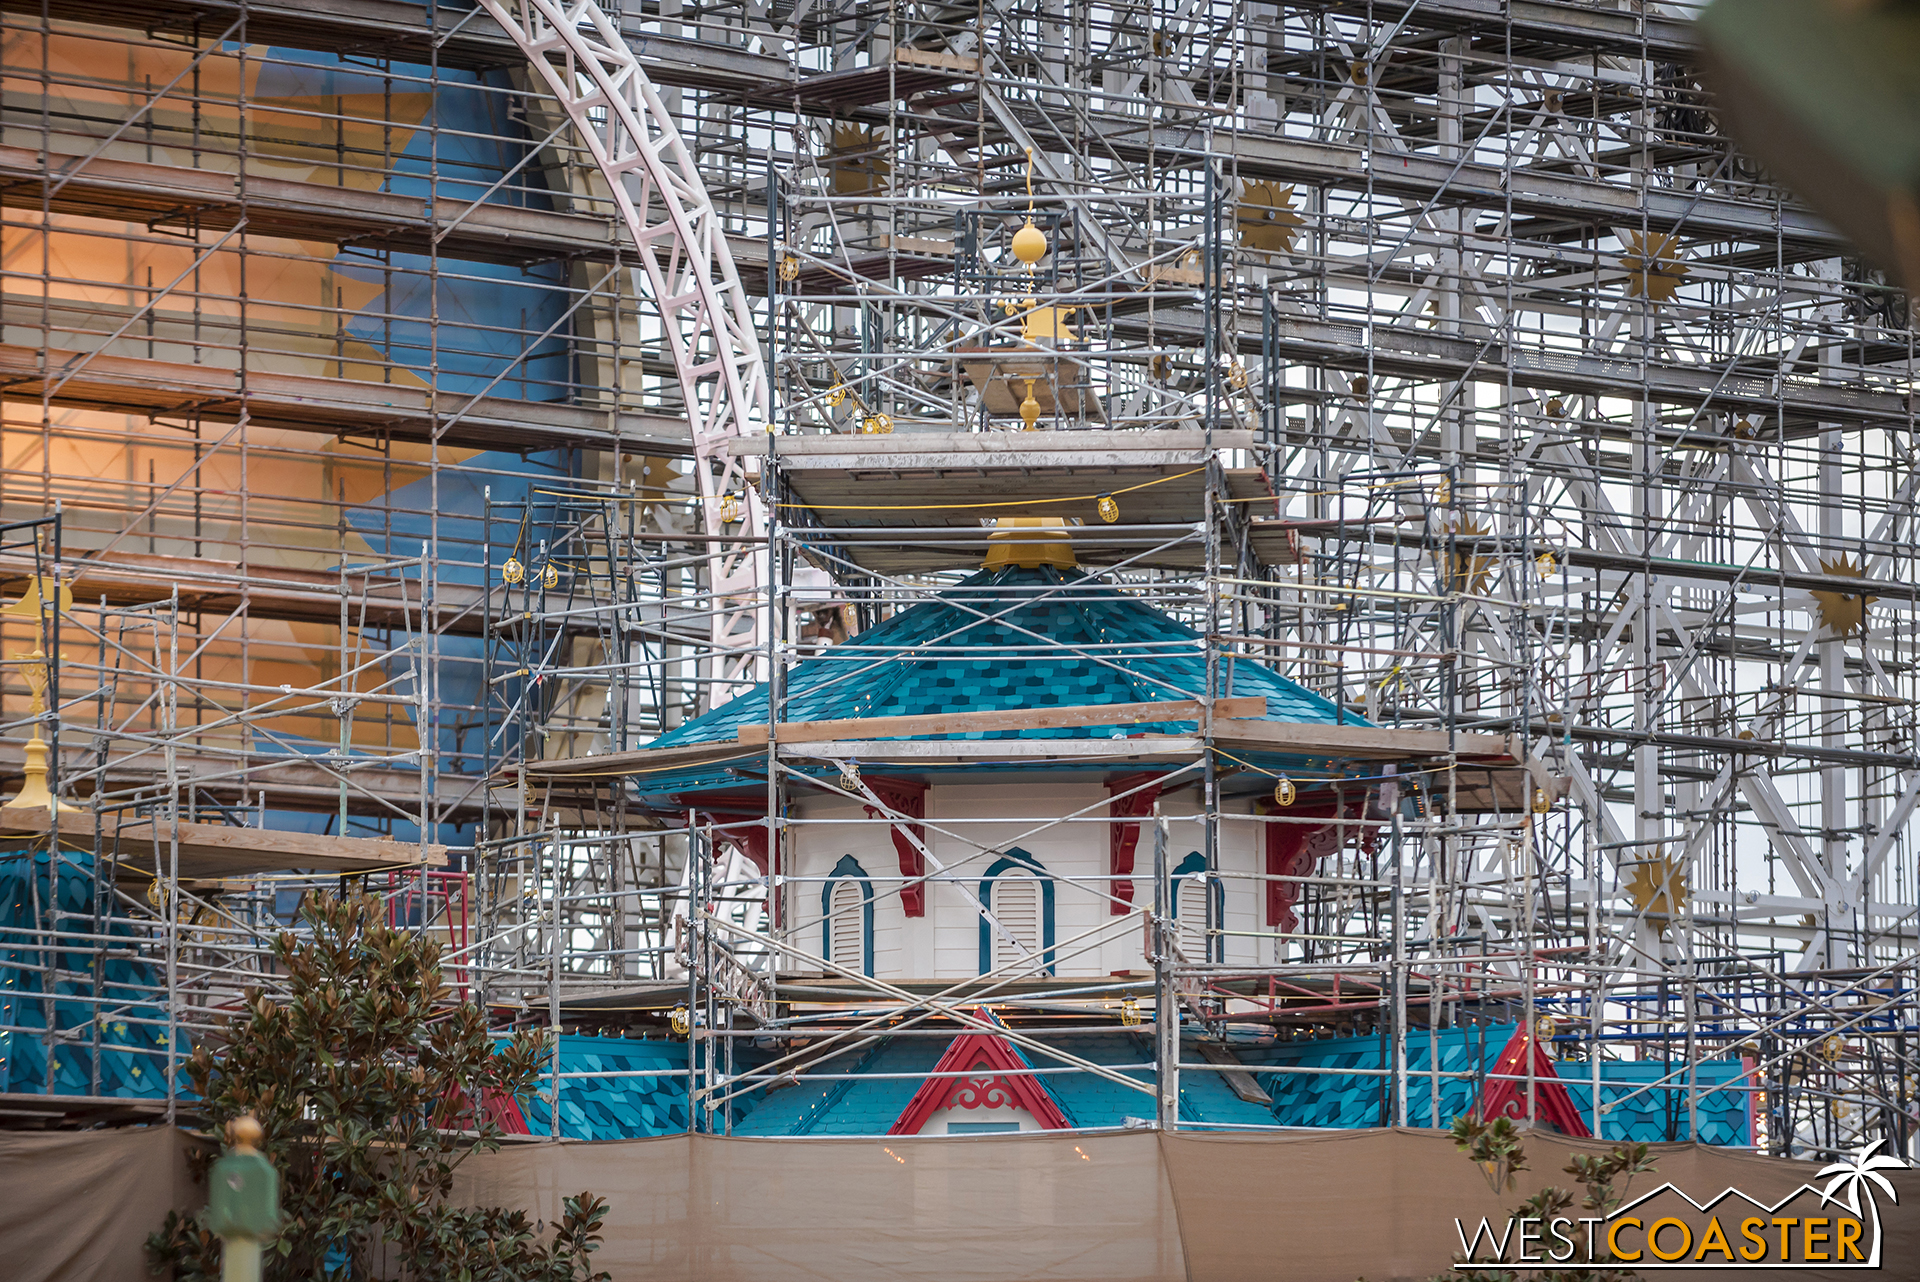 The new paint job on Midway Mania looks great, though!